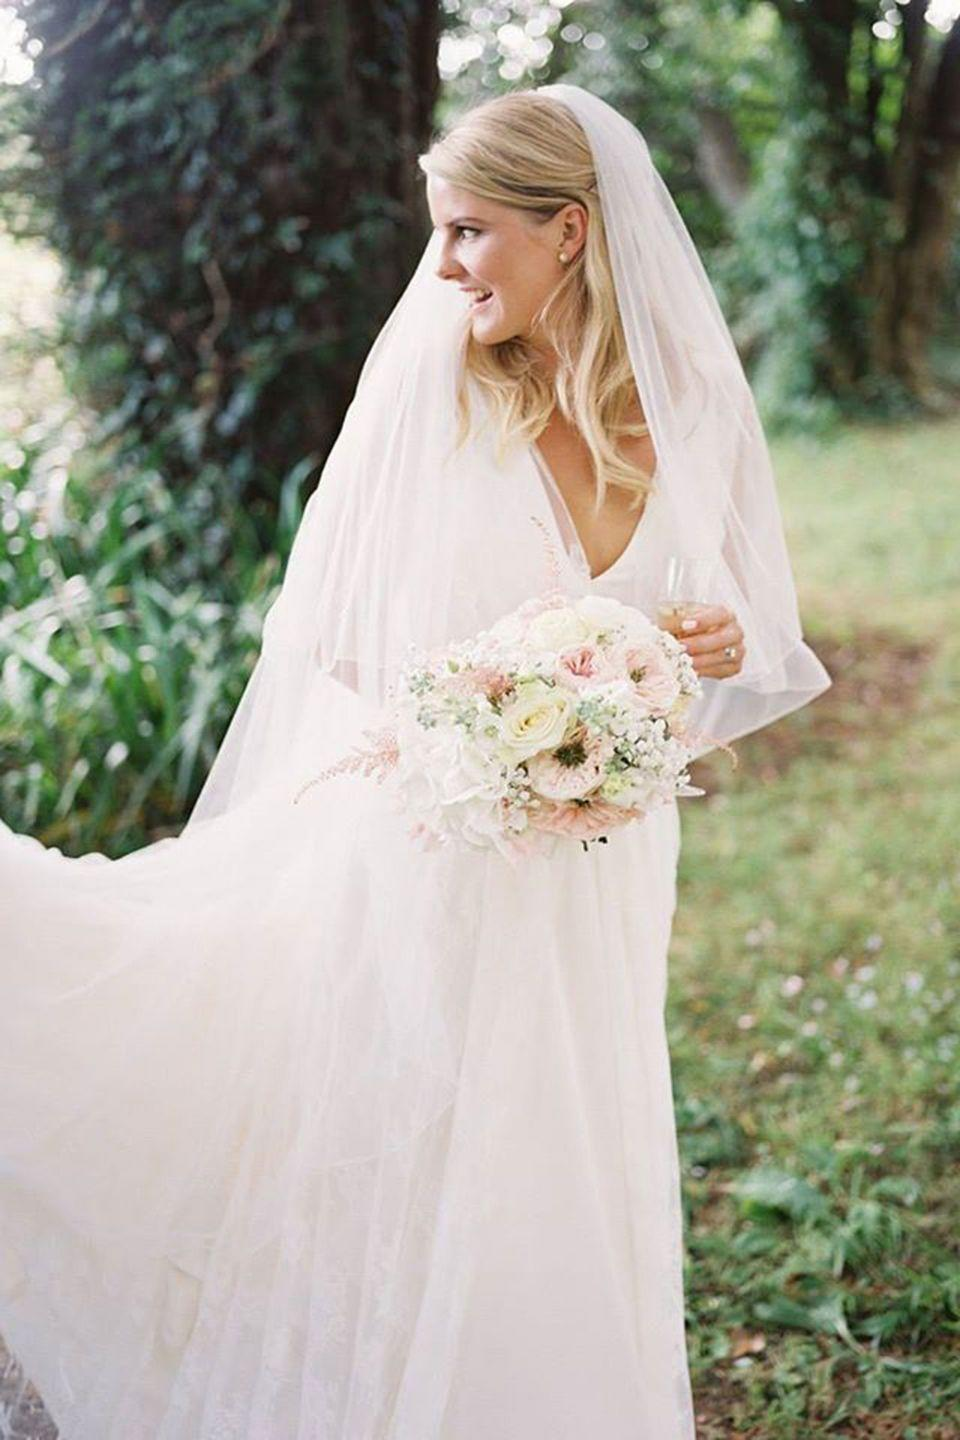 <p><strong>Wedding dress and veil</strong>: Charlie Brear</p><p><strong>Shoes</strong>: Jimmy Choo</p><p><strong>Rings</strong>: 77 diamonds</p>